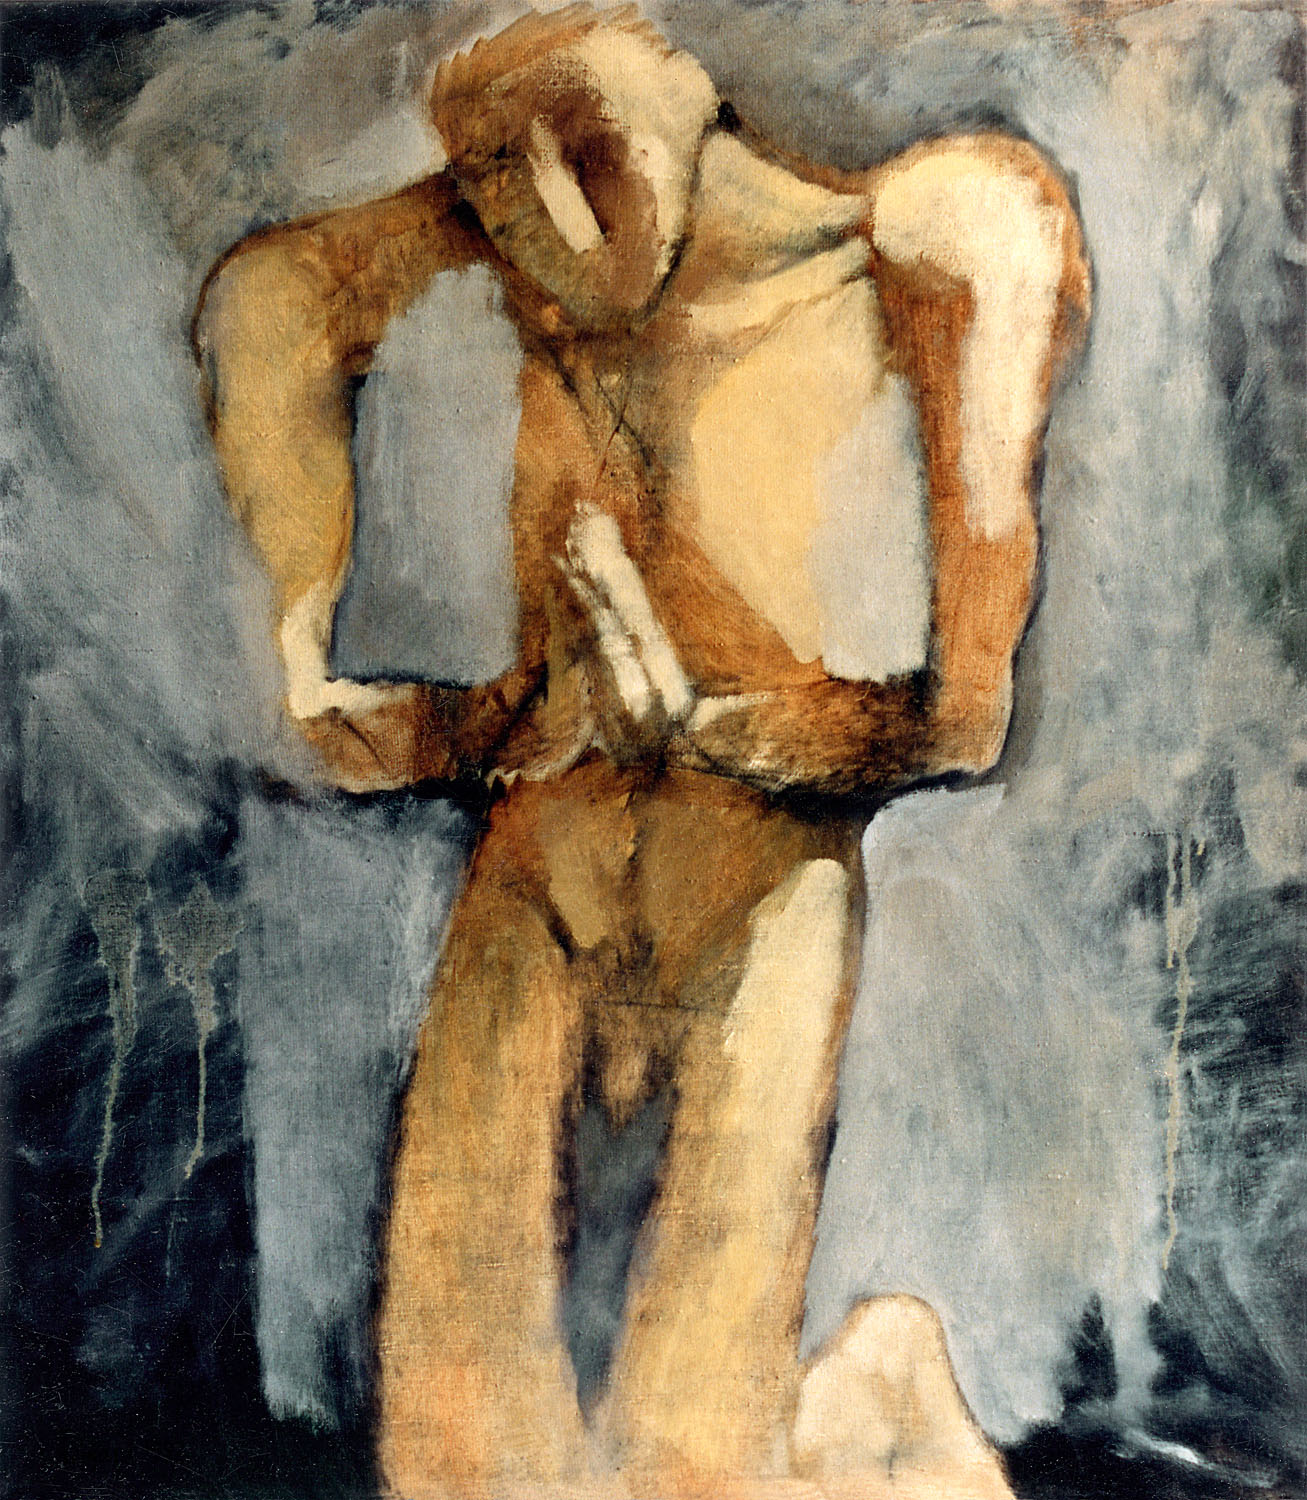 Prayer, 1992, oil on canvas, 43.3 x 43.3 inches, (110 x 110 cm)